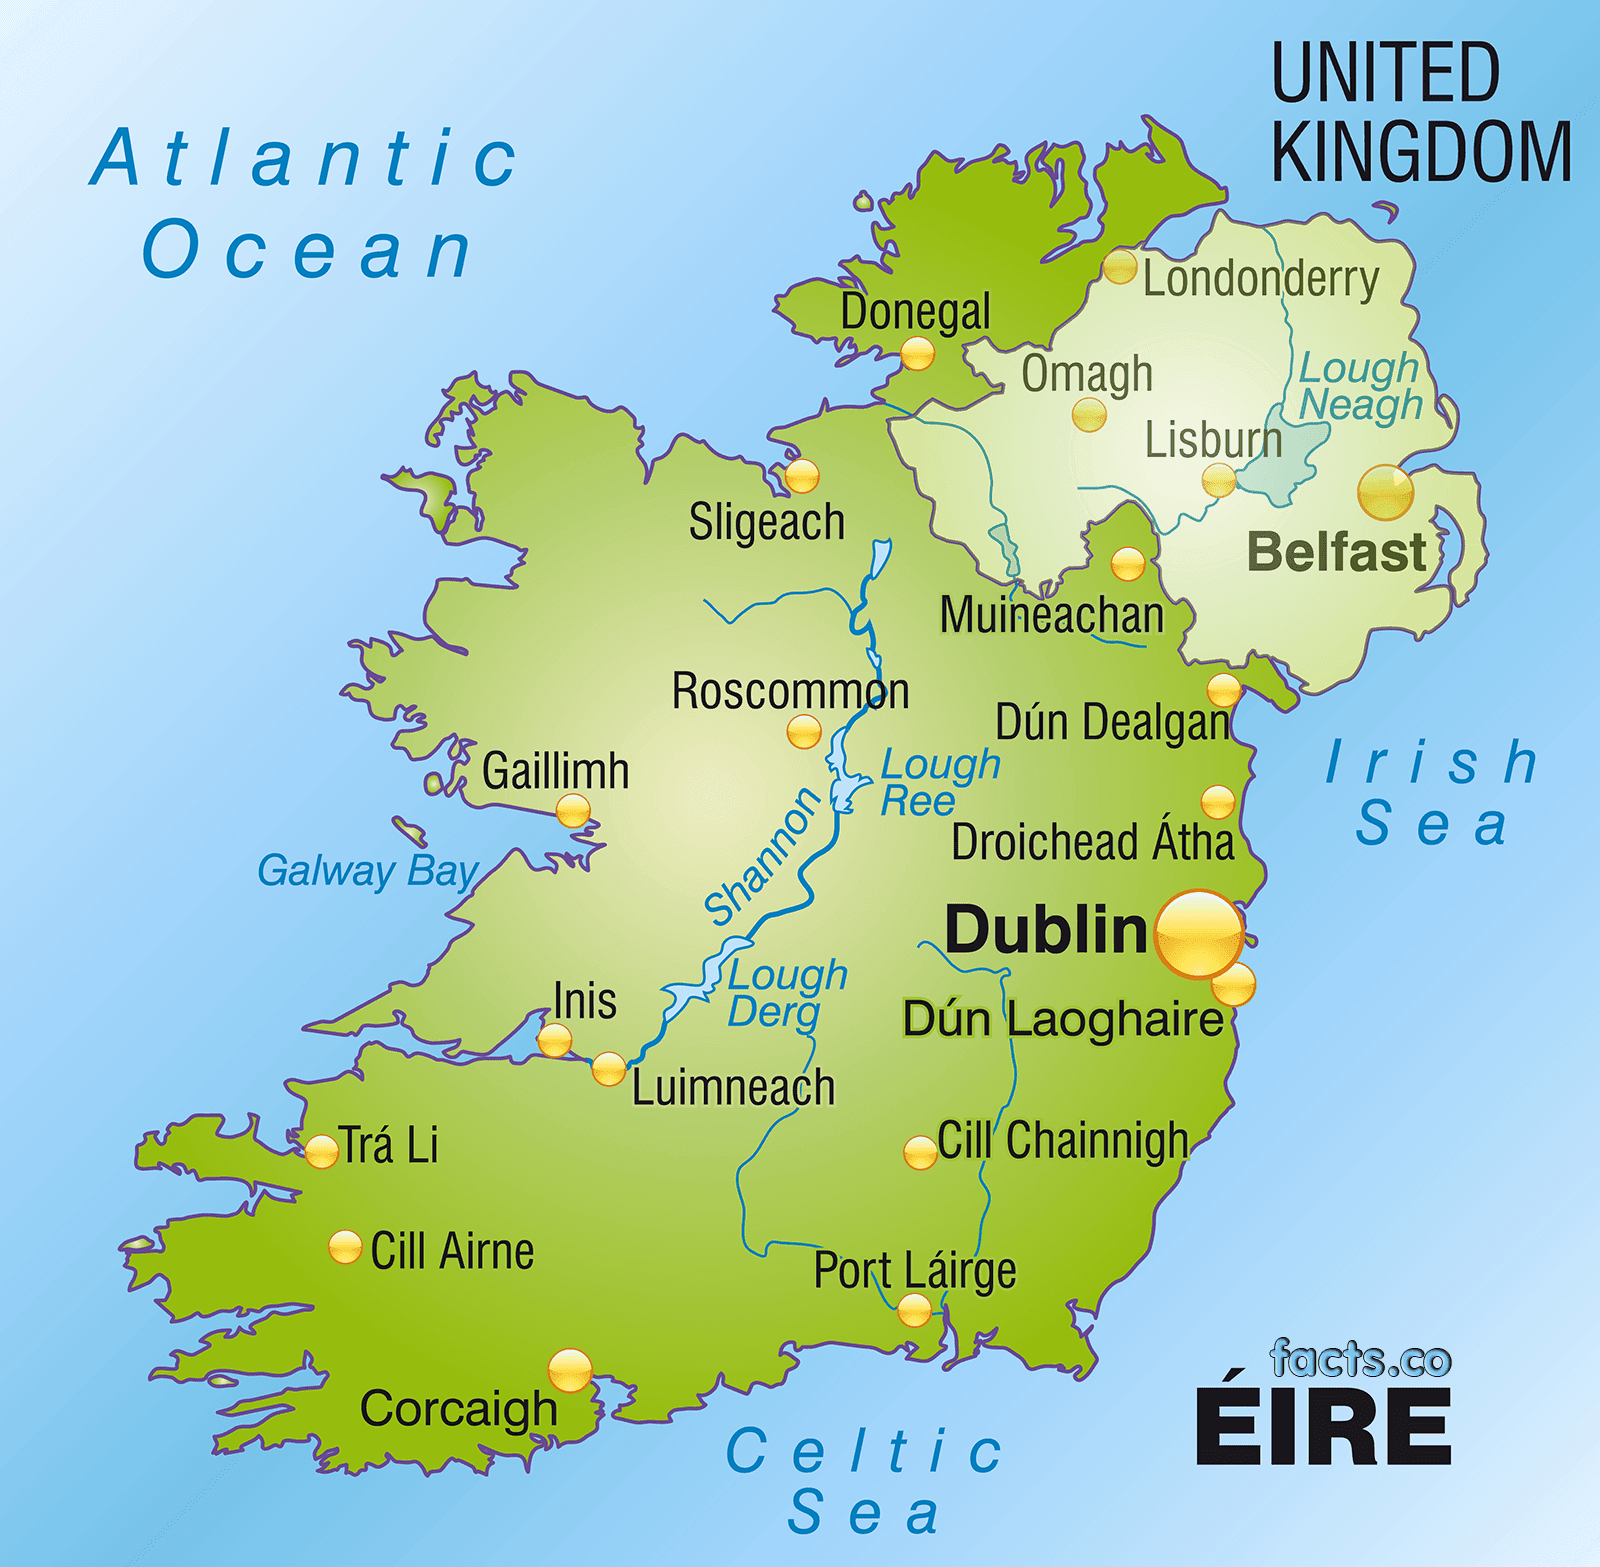 Physical Map Of Ireland.Ireland Physical Map Ireland Map Geography Political City